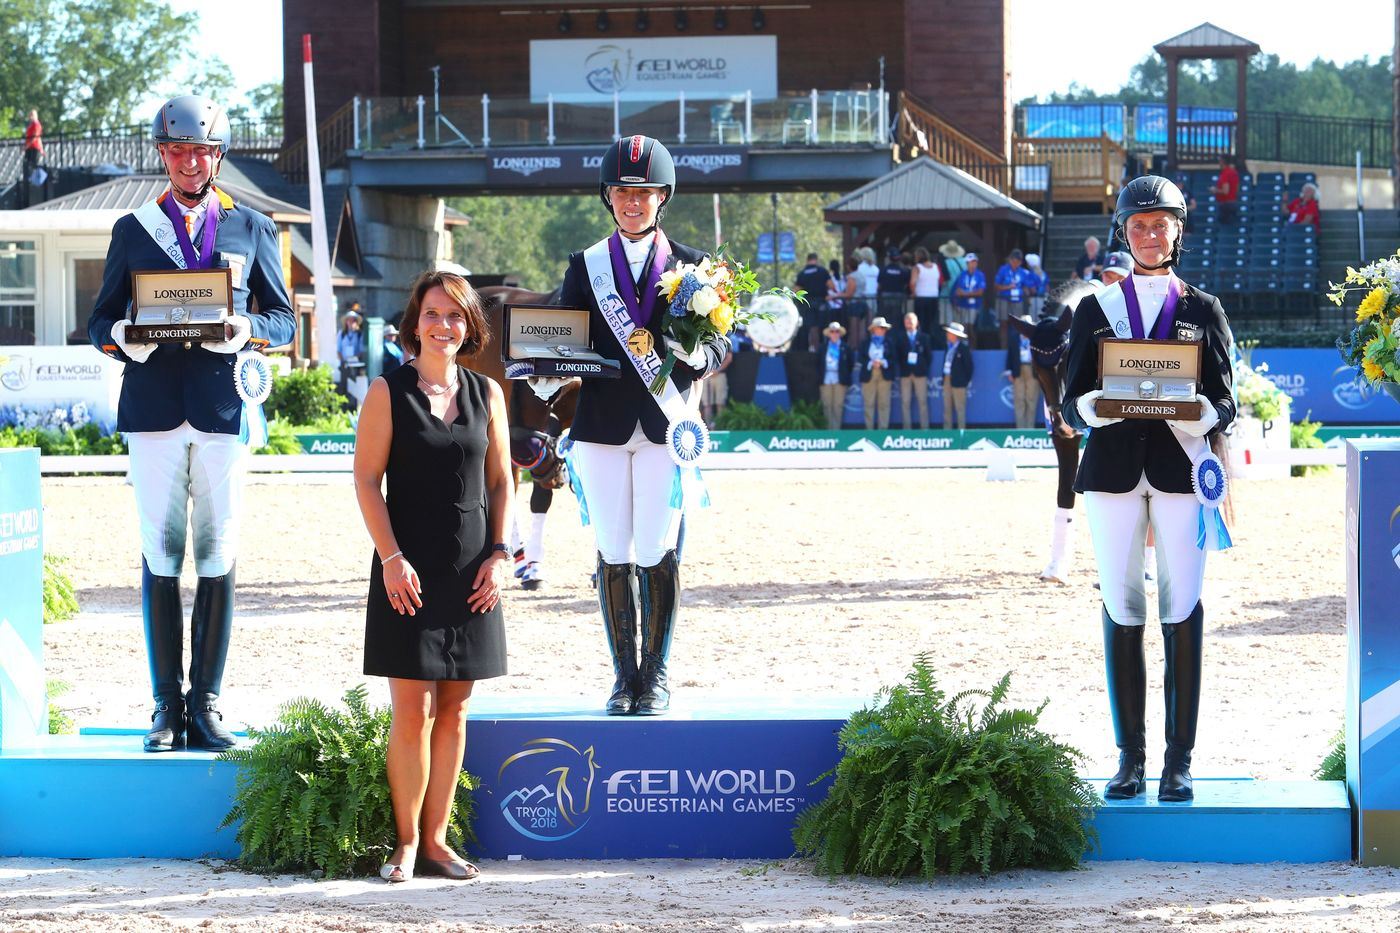 Longines Show Jumping Event: The FEI World Equestrian Games ended beautifully with Germany topping the medal table   11